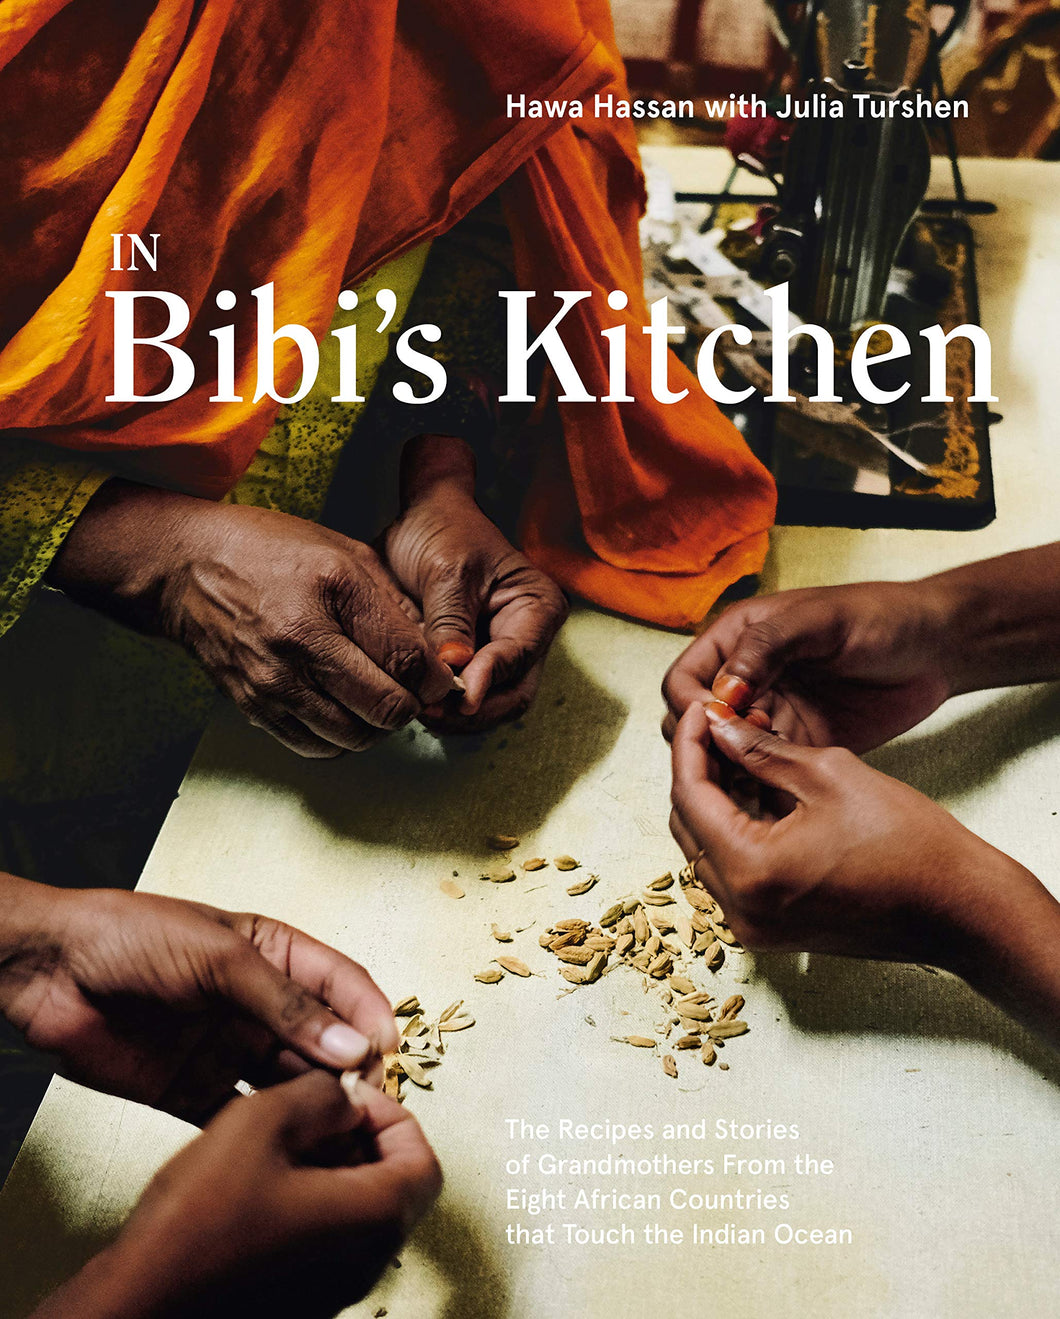 In Bibi's Kitchen: The Recipes and Stories of Grandmothers from the Eight African Countries that Touch the Indian Ocean (Pre-Order, Oct 20th)